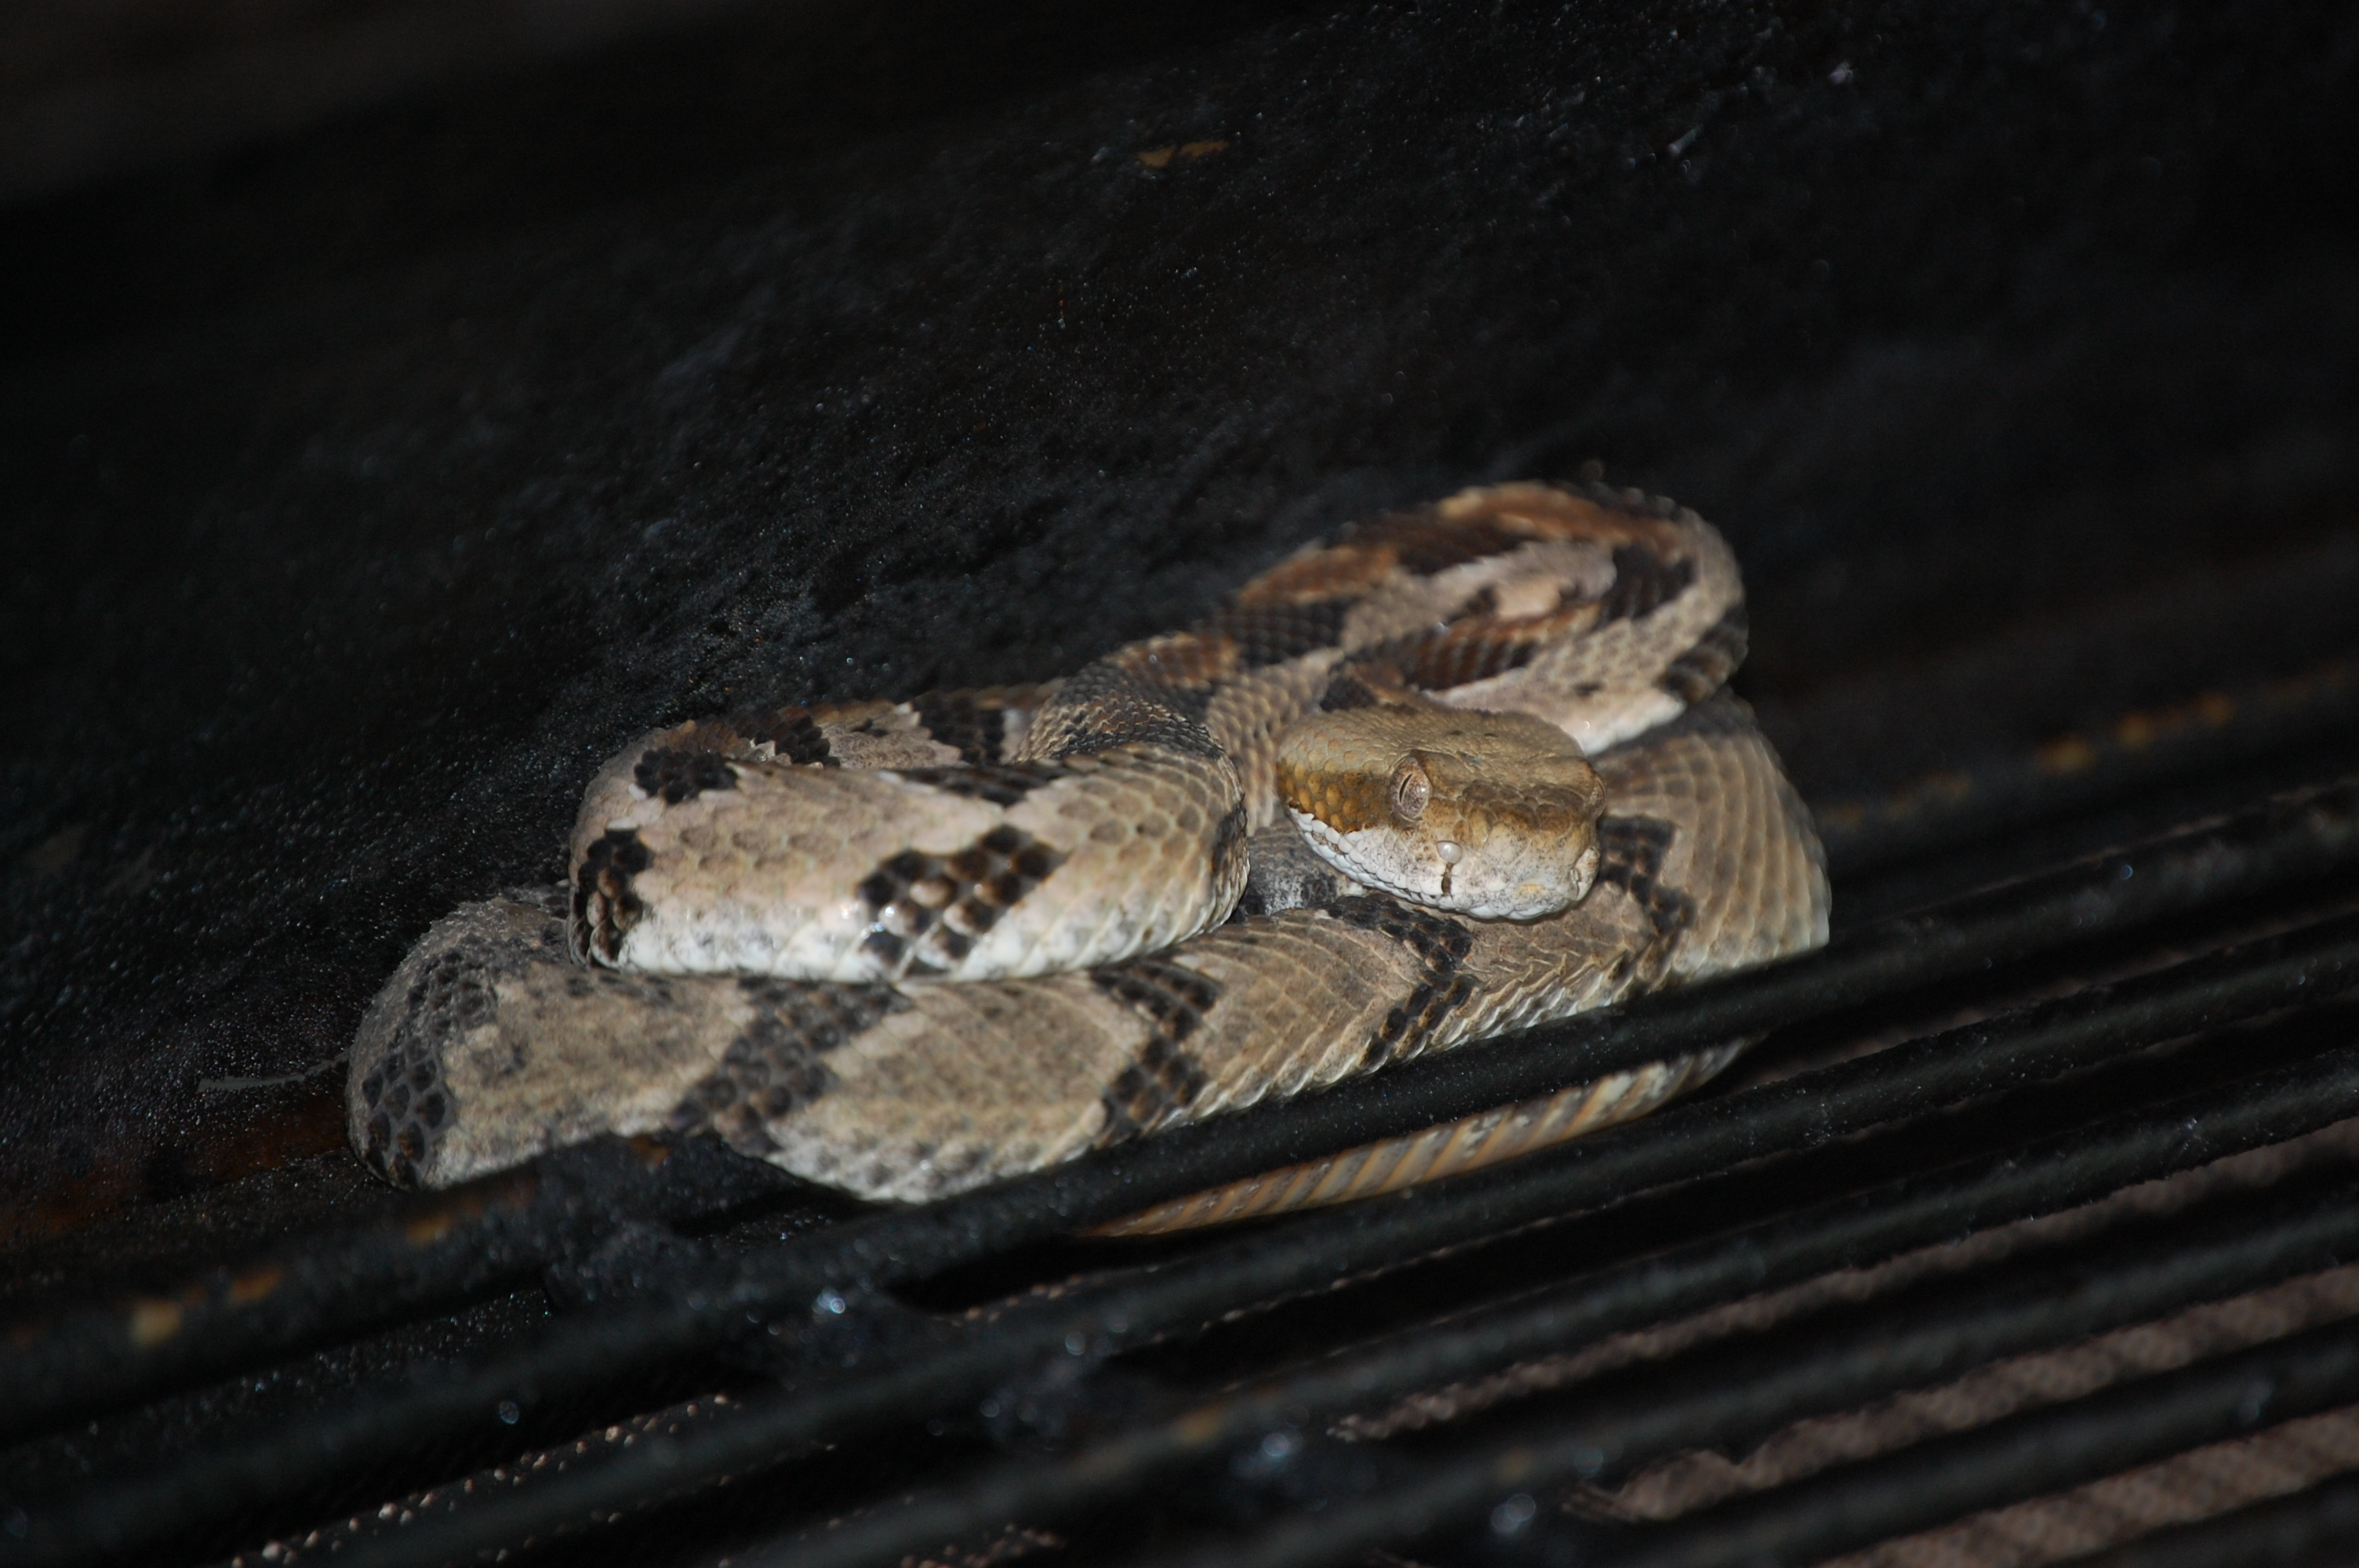 The young rattlesnake found curled up on the warming shelf of Rand and Marci Ziegler's outdoor grill.